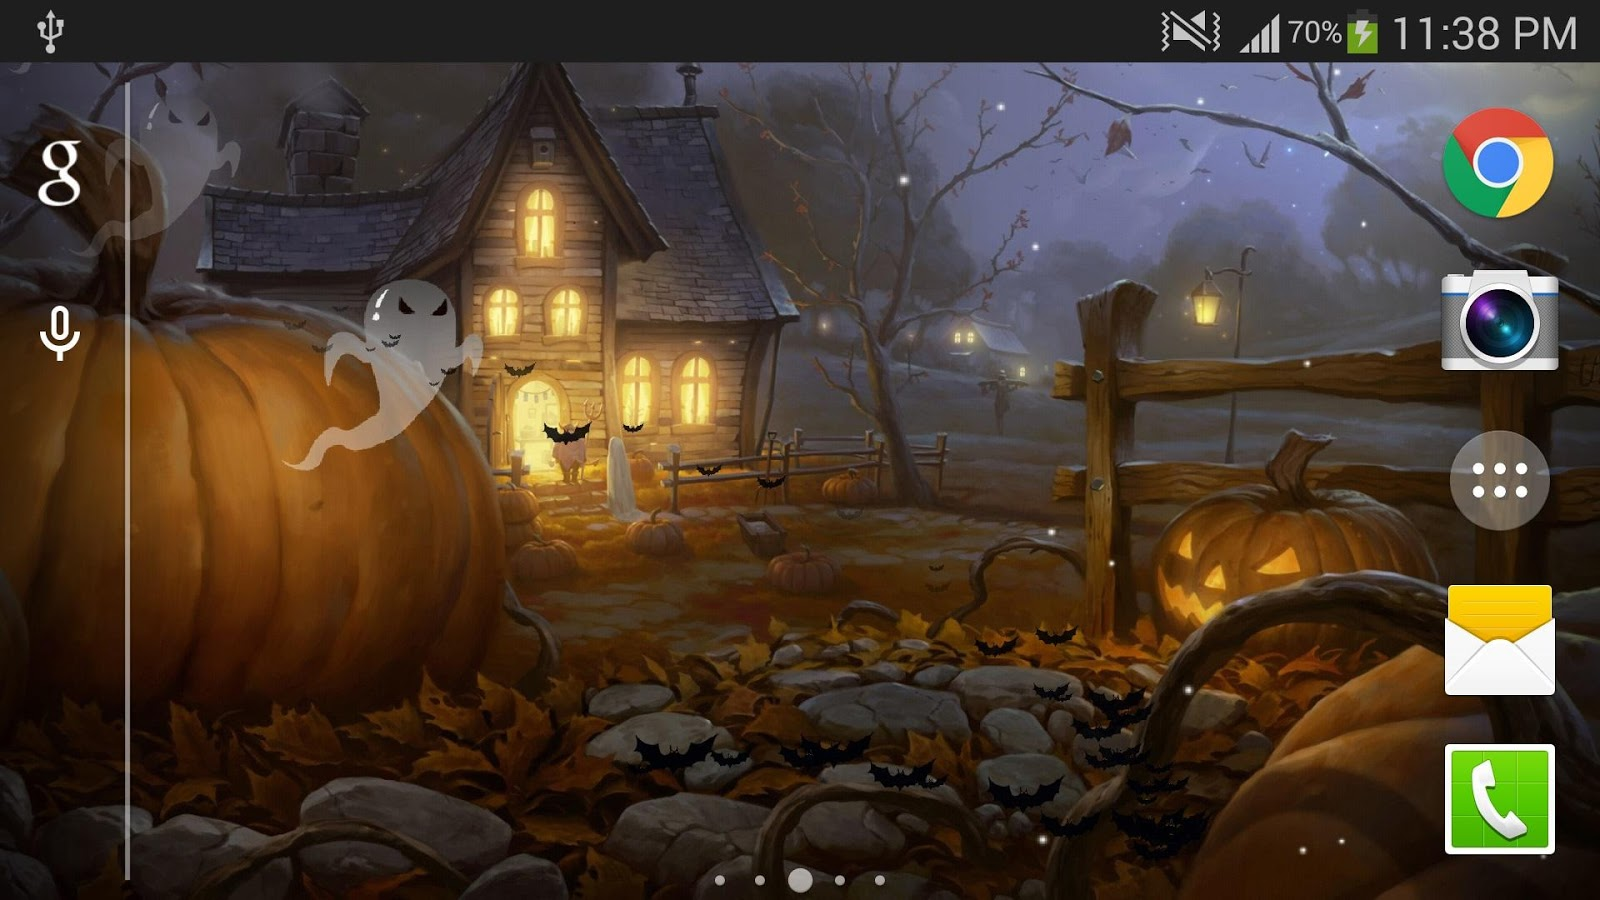 Fall Wallpaper For Android Halloween Live Wallpaper Hd Android Apps On Google Play